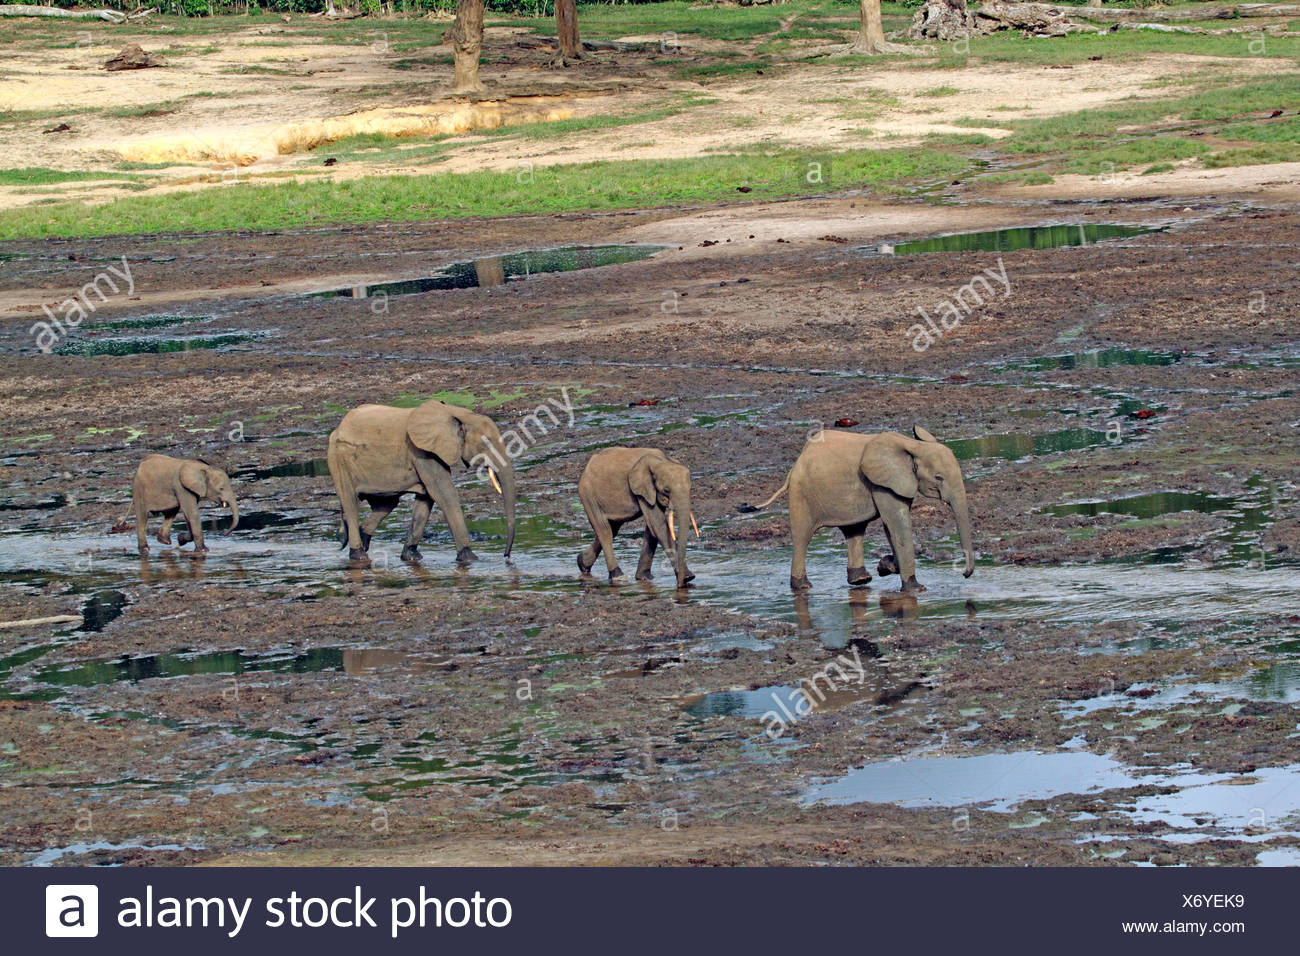 Forest elephant, African elephant (Loxodonta cyclotis, Loxodonta africana cyclotis), herd walking in the forest clearing, Central African Republic, Sangha-Mbaere, Dzanga-Sangha Stock Photo